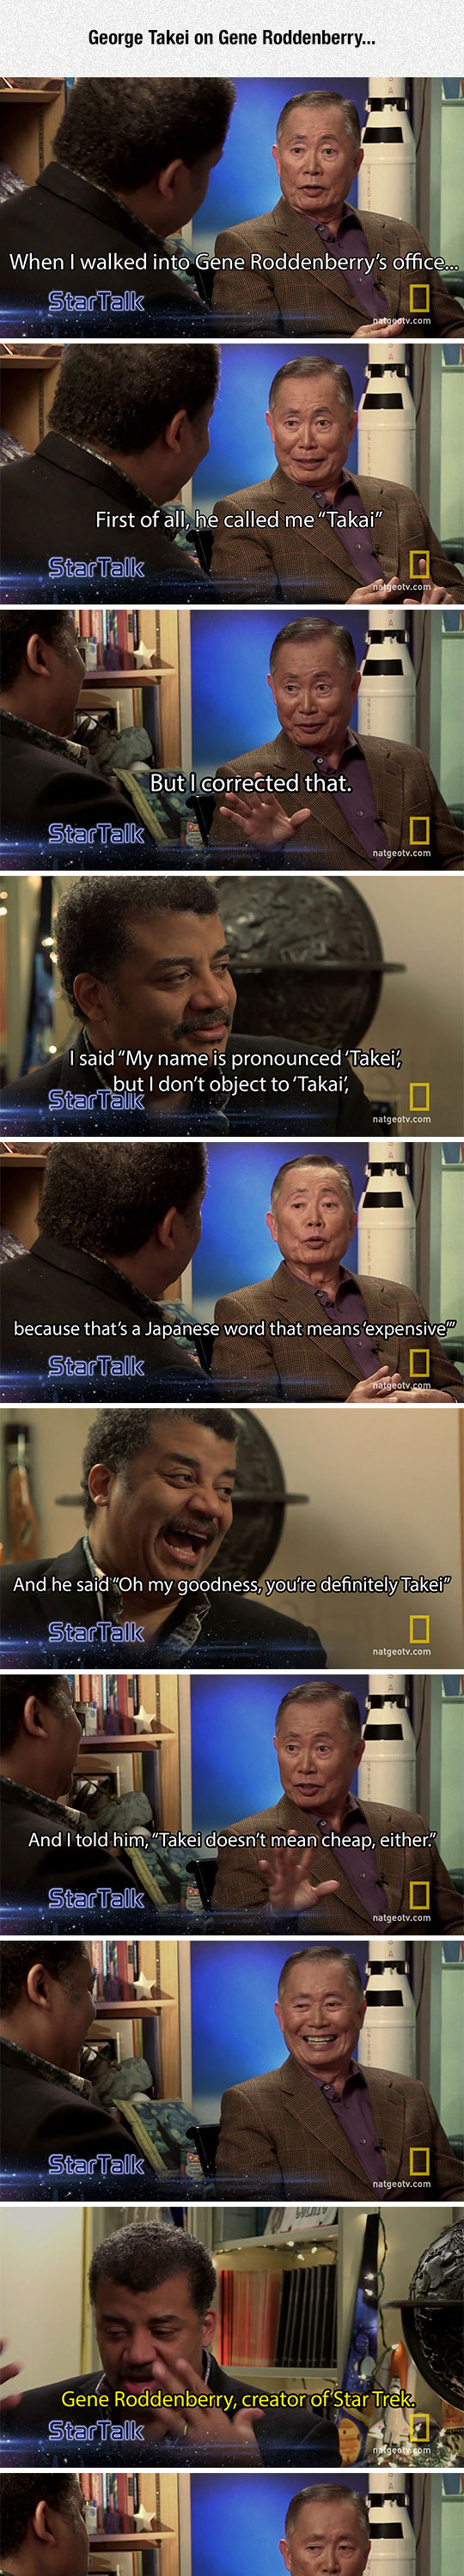 George Takei On Gene Roddenberry